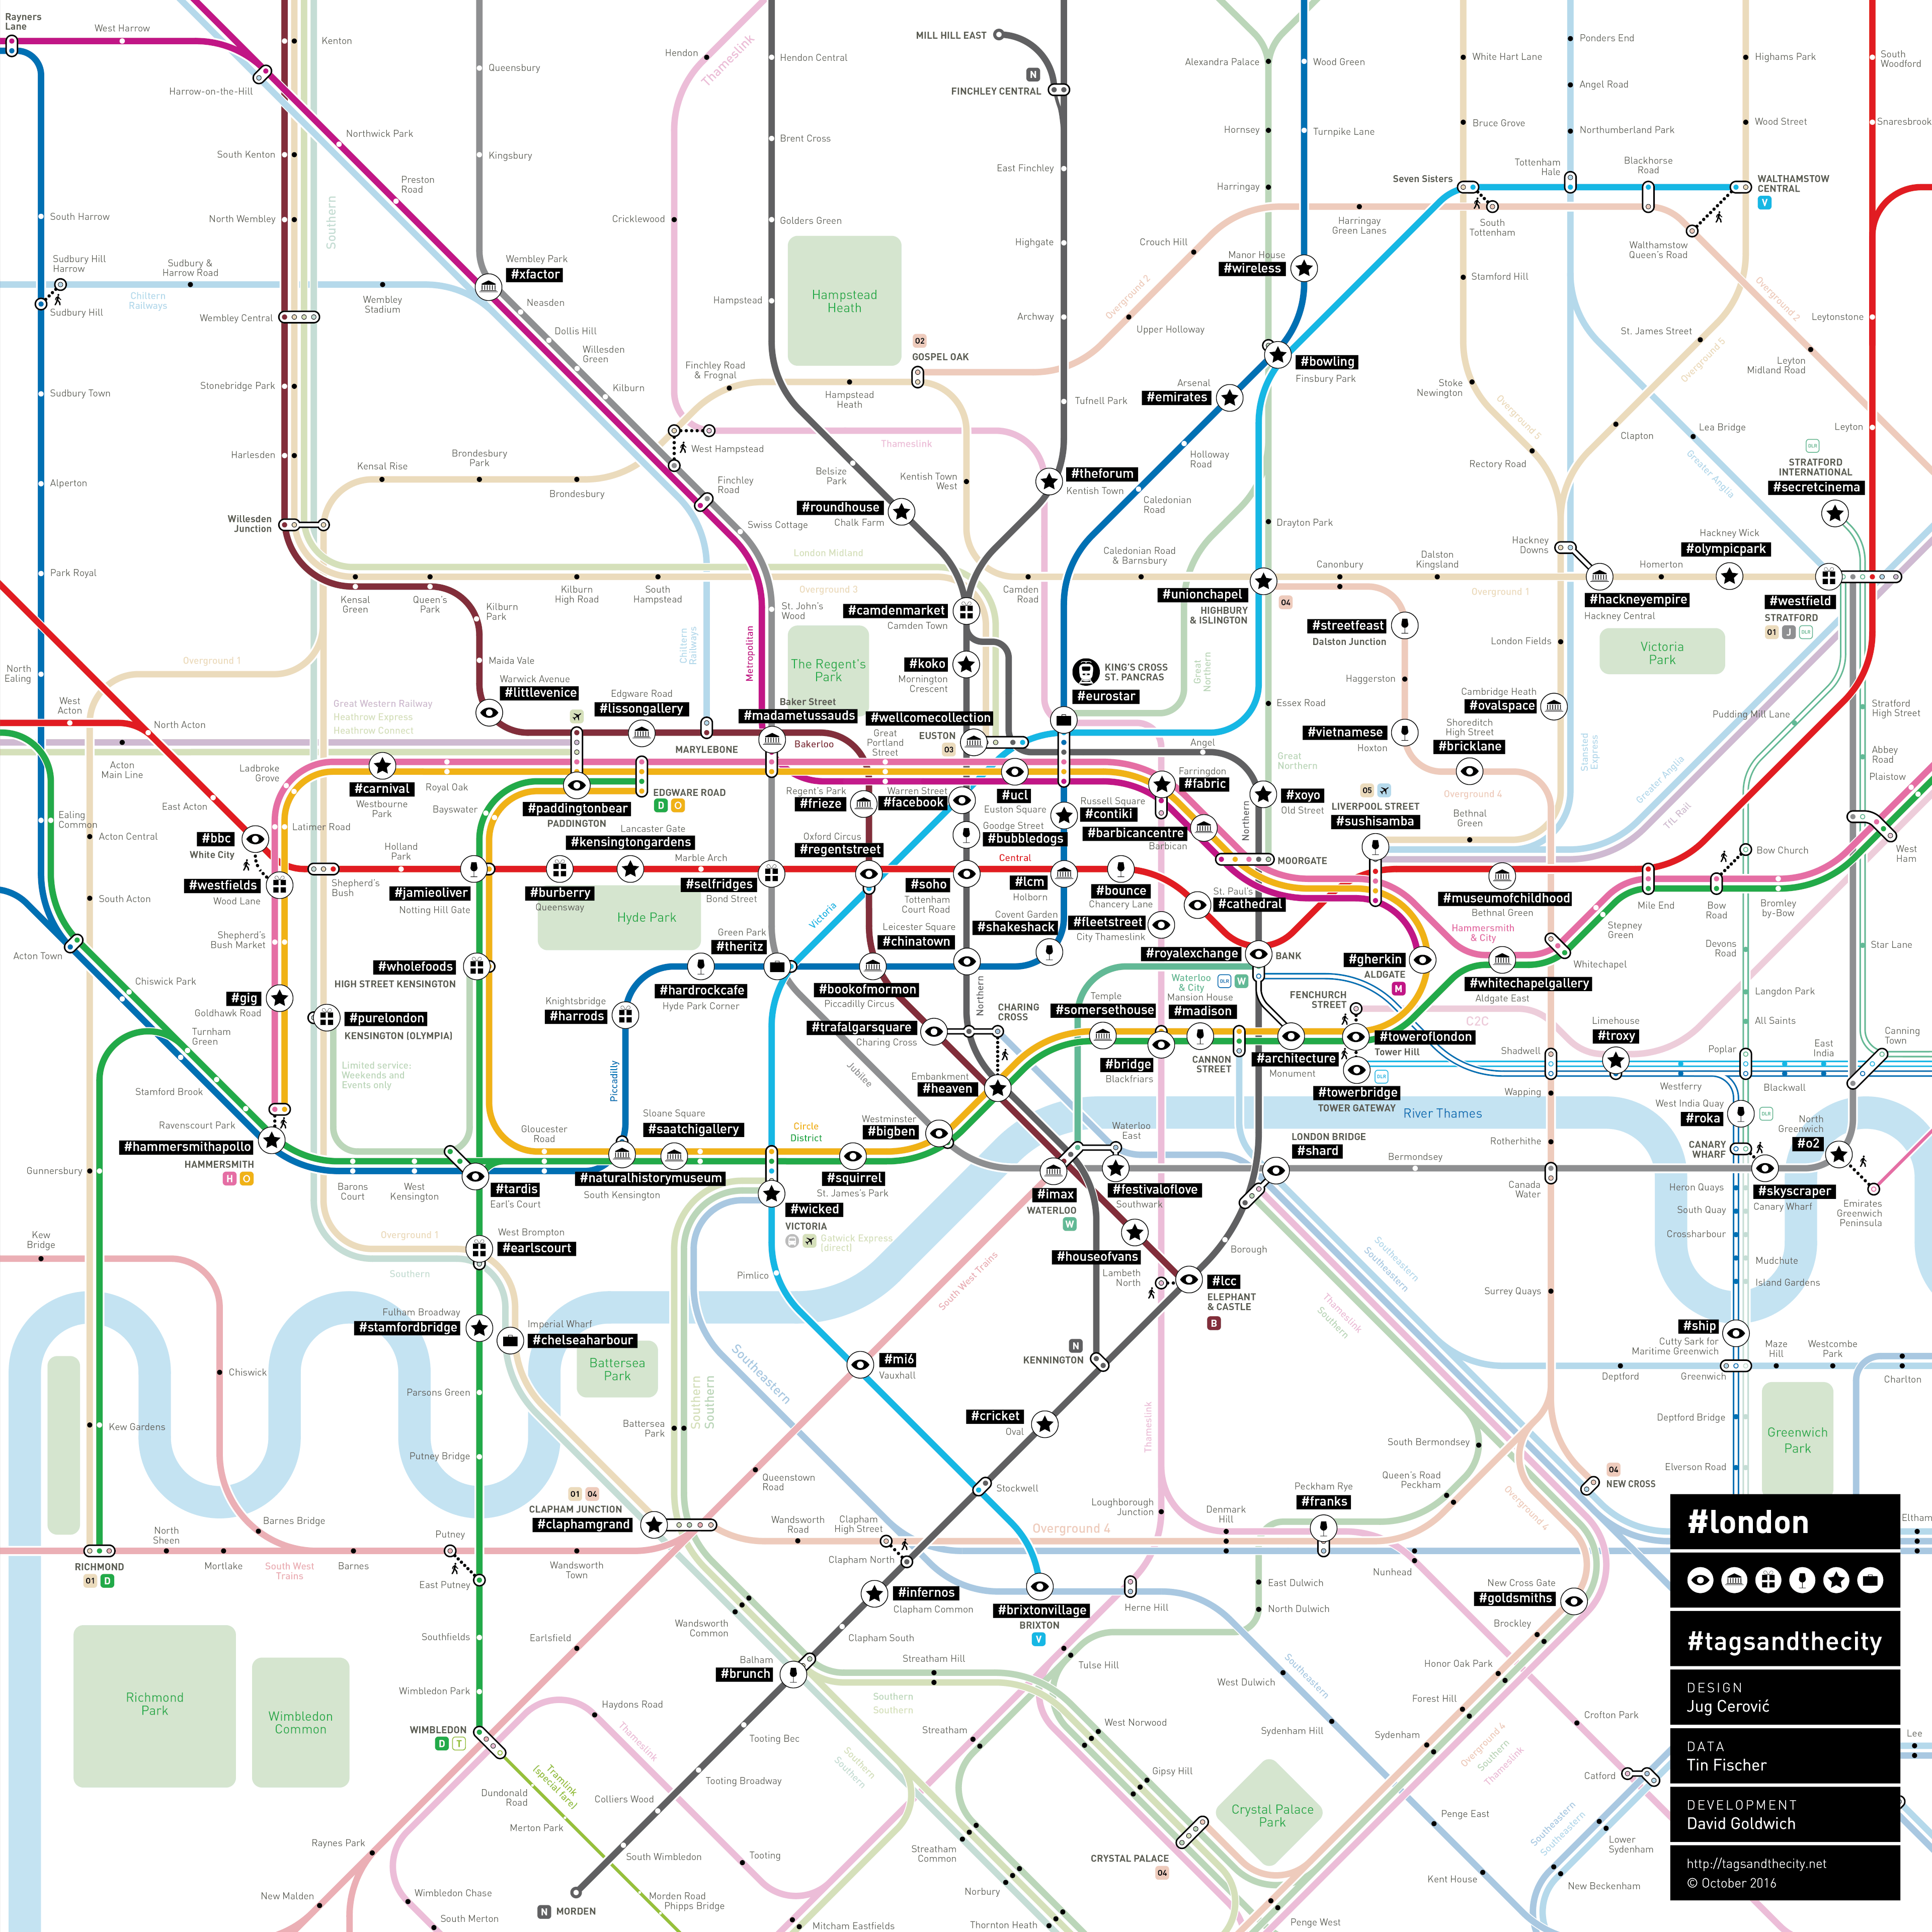 3840x3840 These Maps Do More Than Just Give Directions